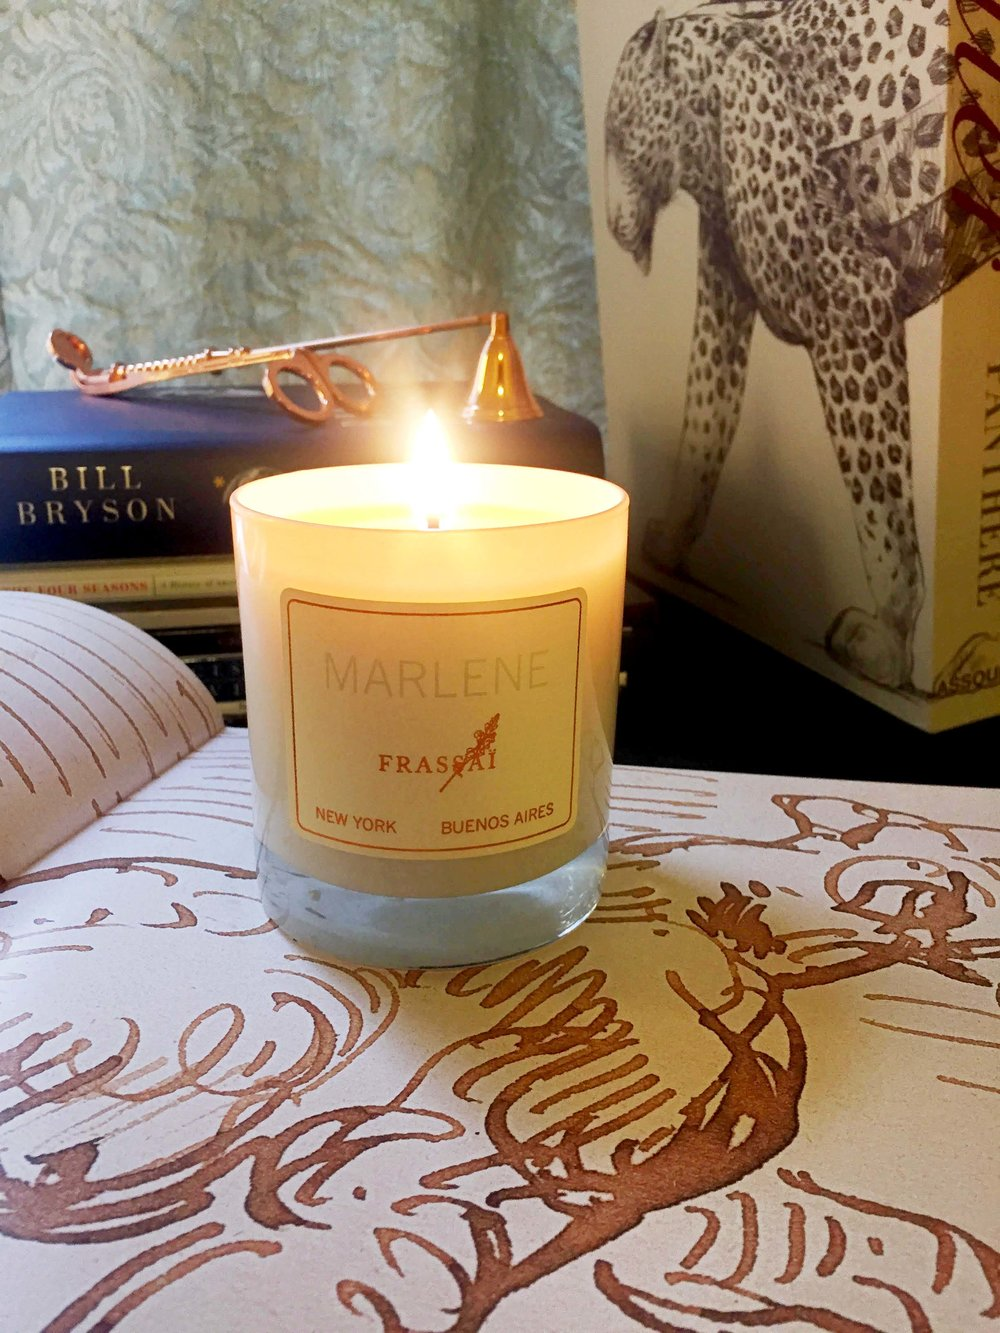 Marlene scented candle ~ dark oak, narcissus, aged Scotch whisky, Vuelta Abajo tobacco, leather, vanilla cream